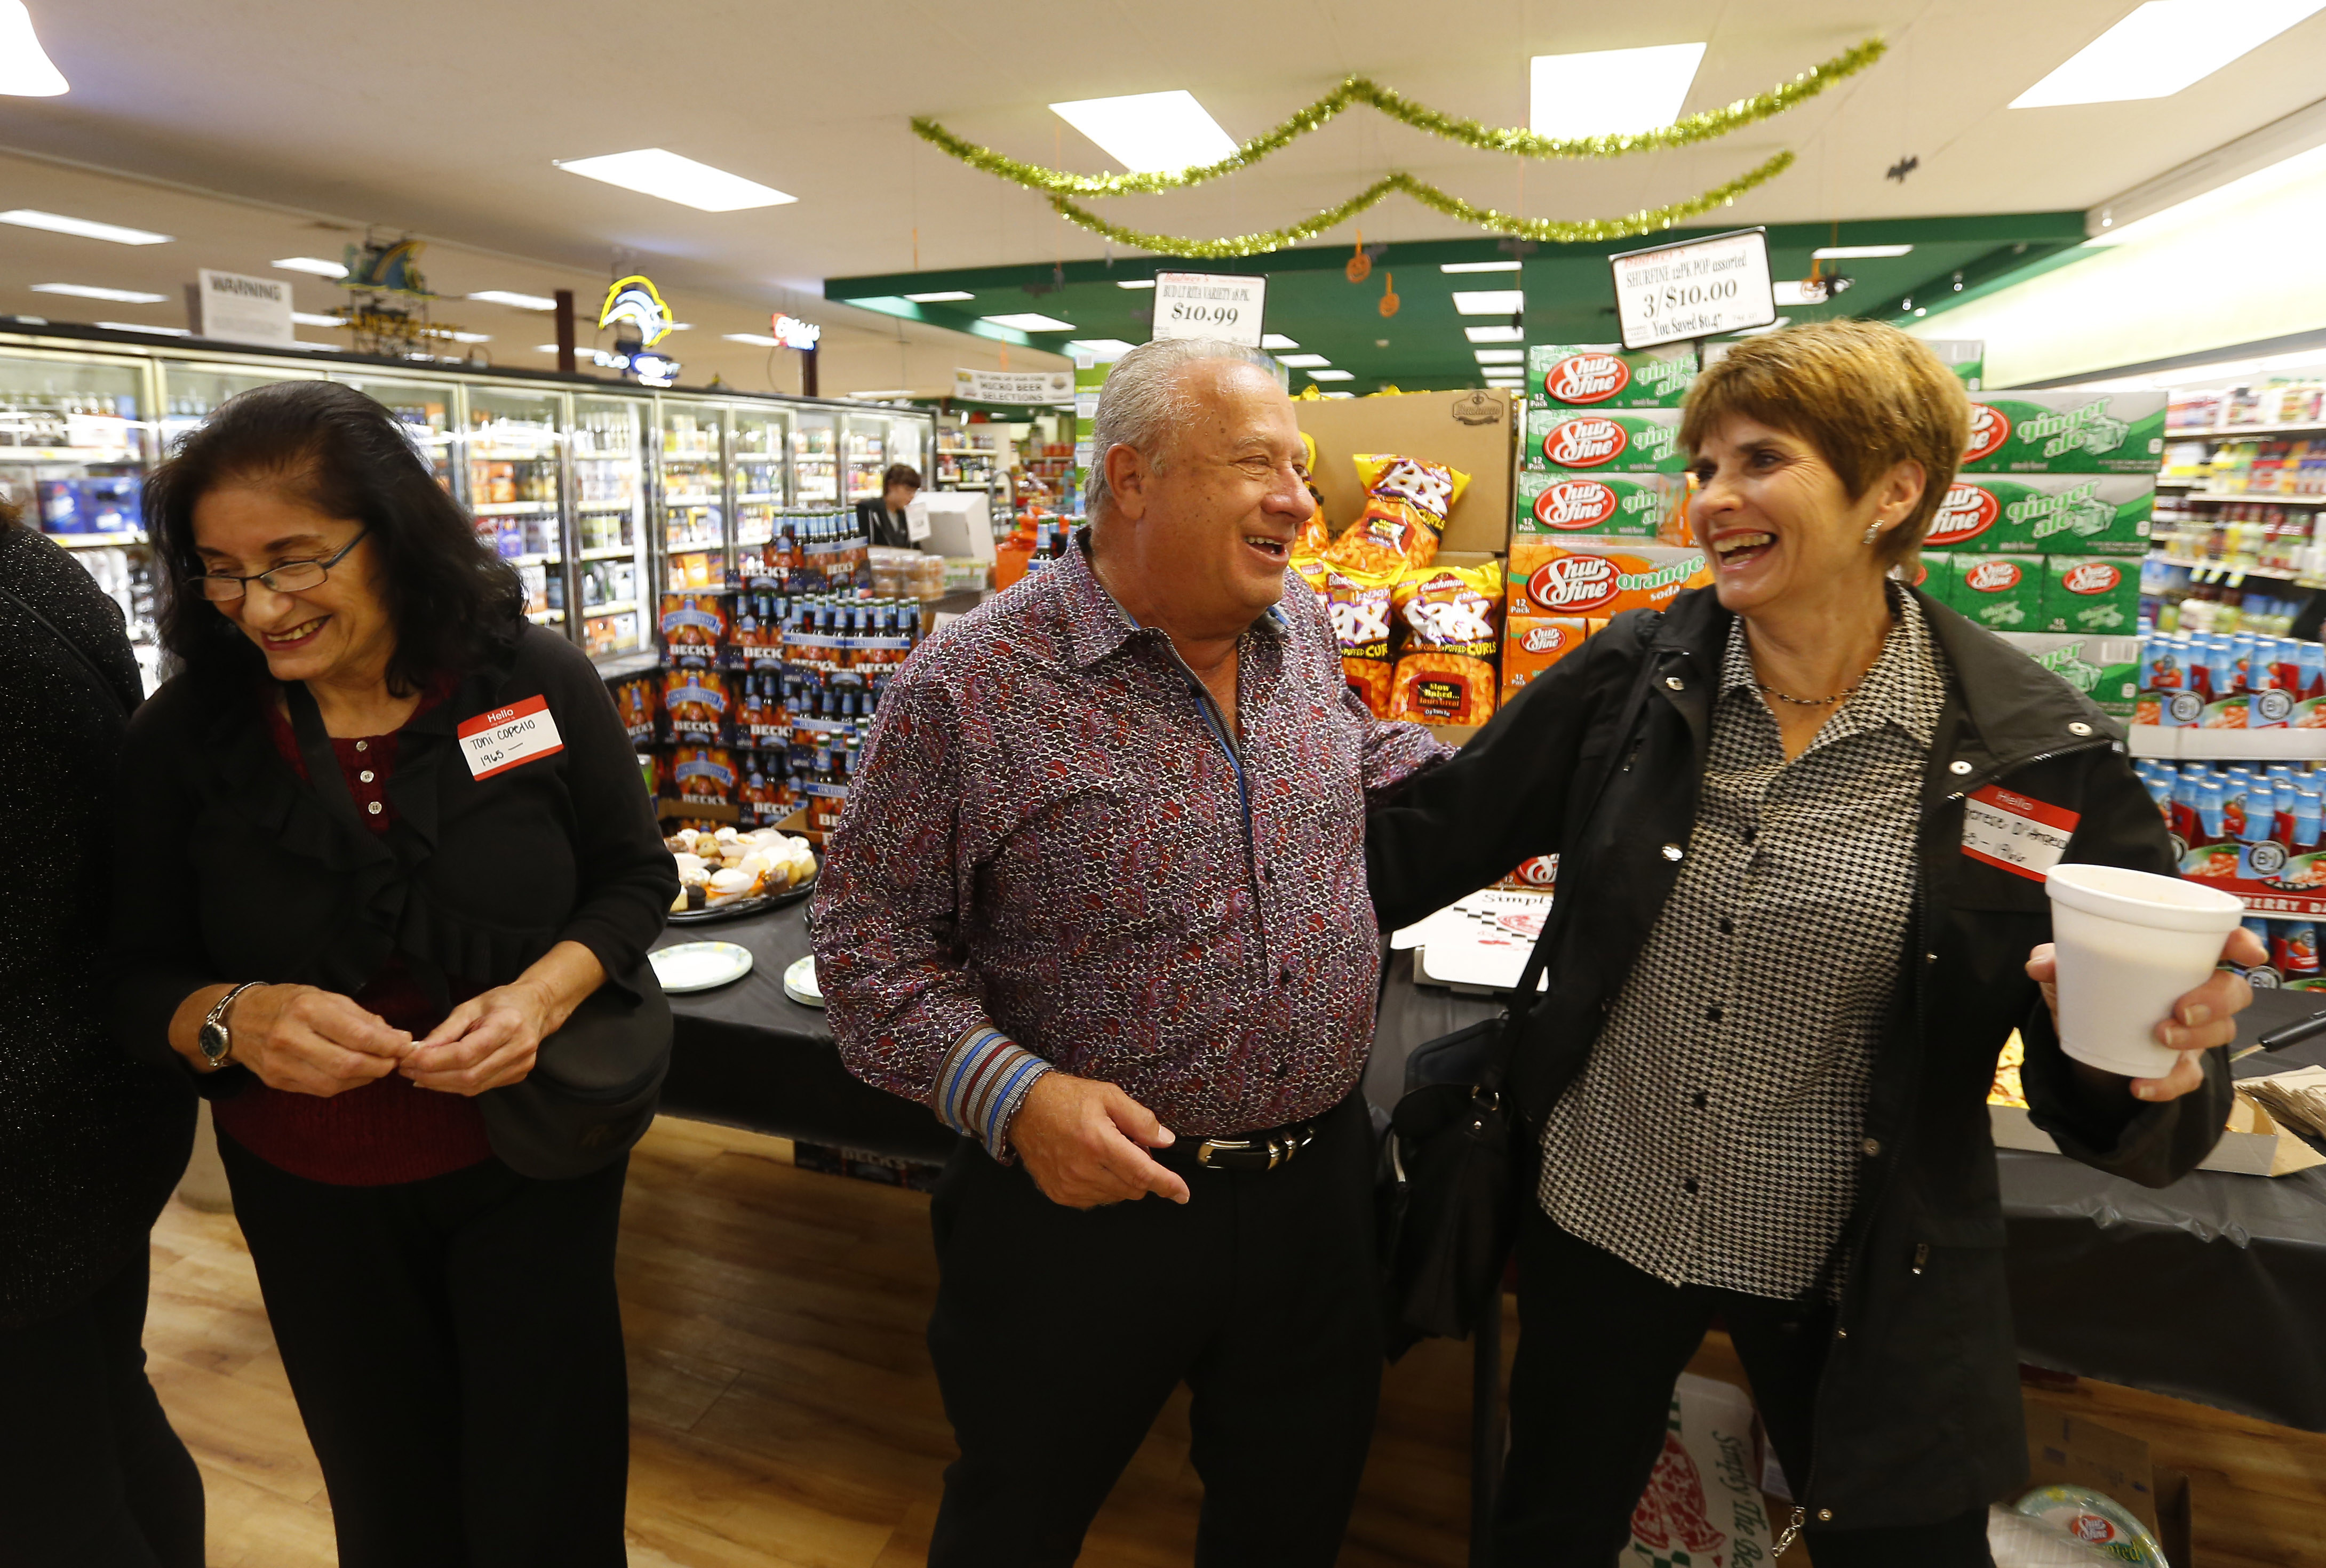 Frank Budwey has a laugh with former employee Therese D'Angelo during a reunion of former employees at the store in North Tonawanda on Saturday, Oct. 30, 2016. (Mark Mulville/Buffalo News)